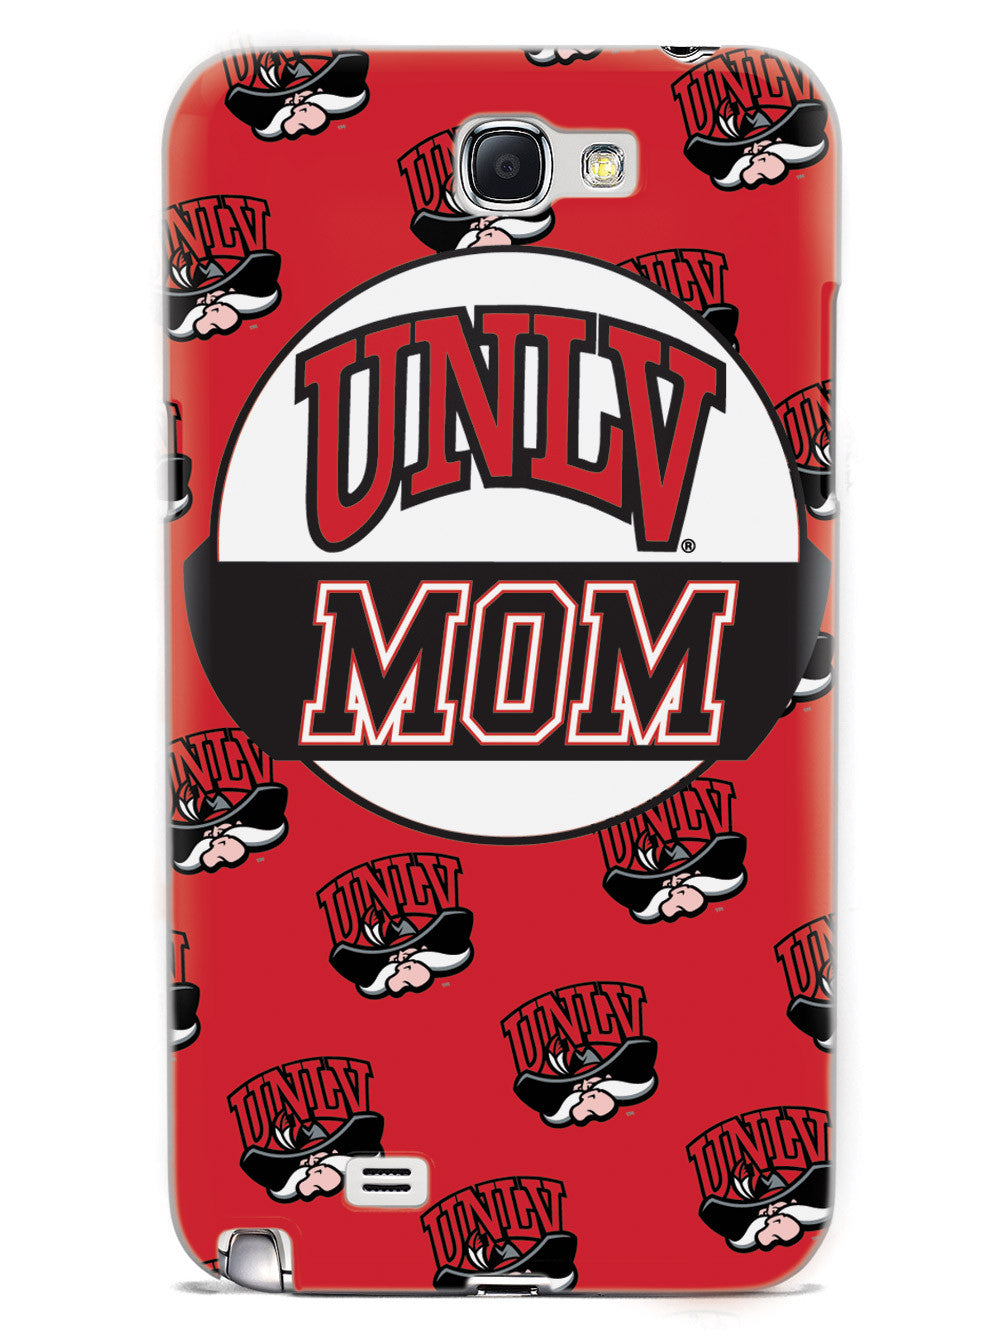 College Mom - University of Nevada, Las Vegas (UNLV) Rebels Case